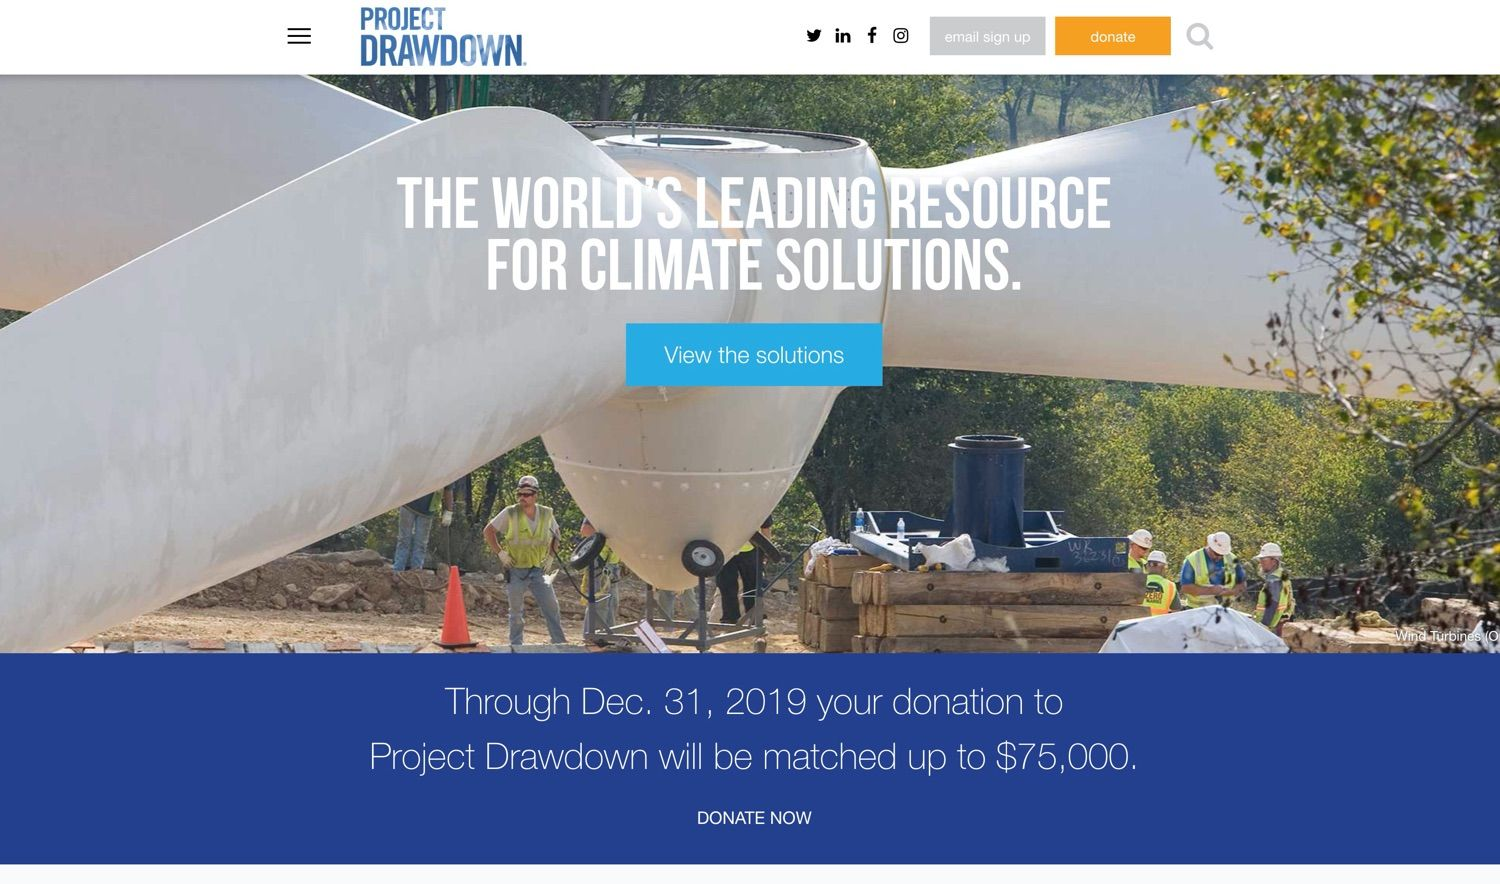 The world's leading resource for climate solutions.